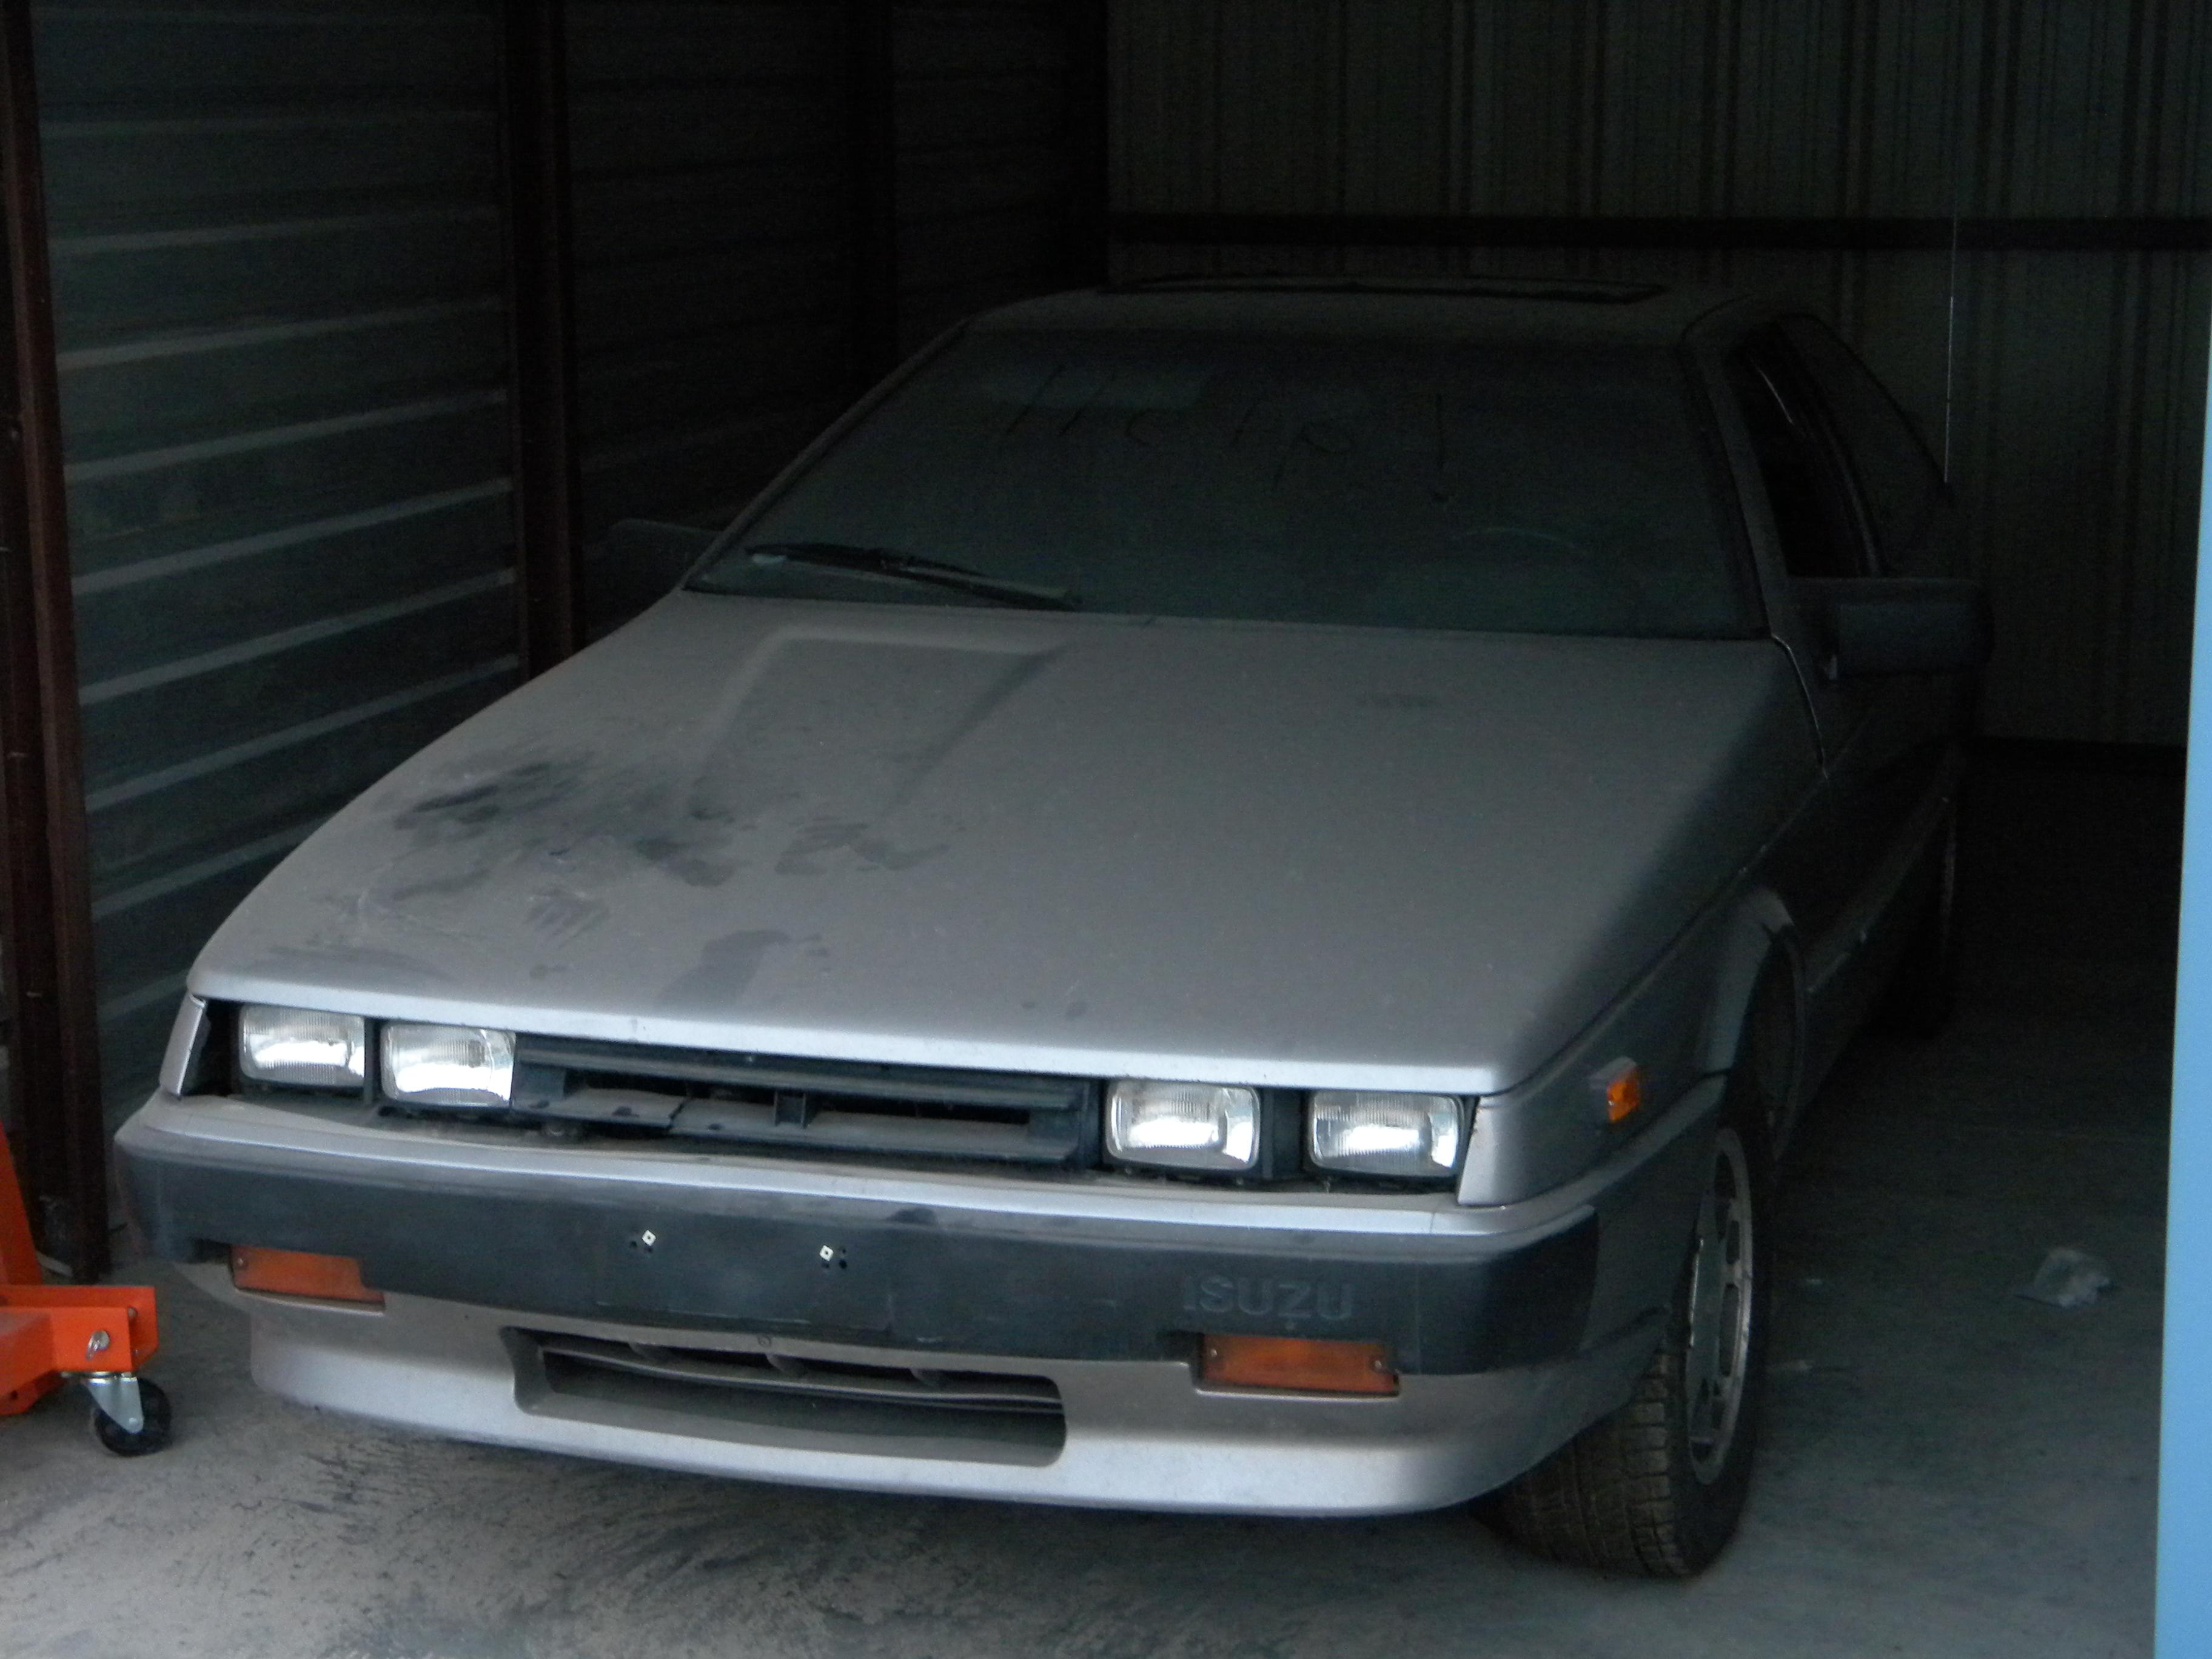 ImpulseRocket 1988 Isuzu Impulse